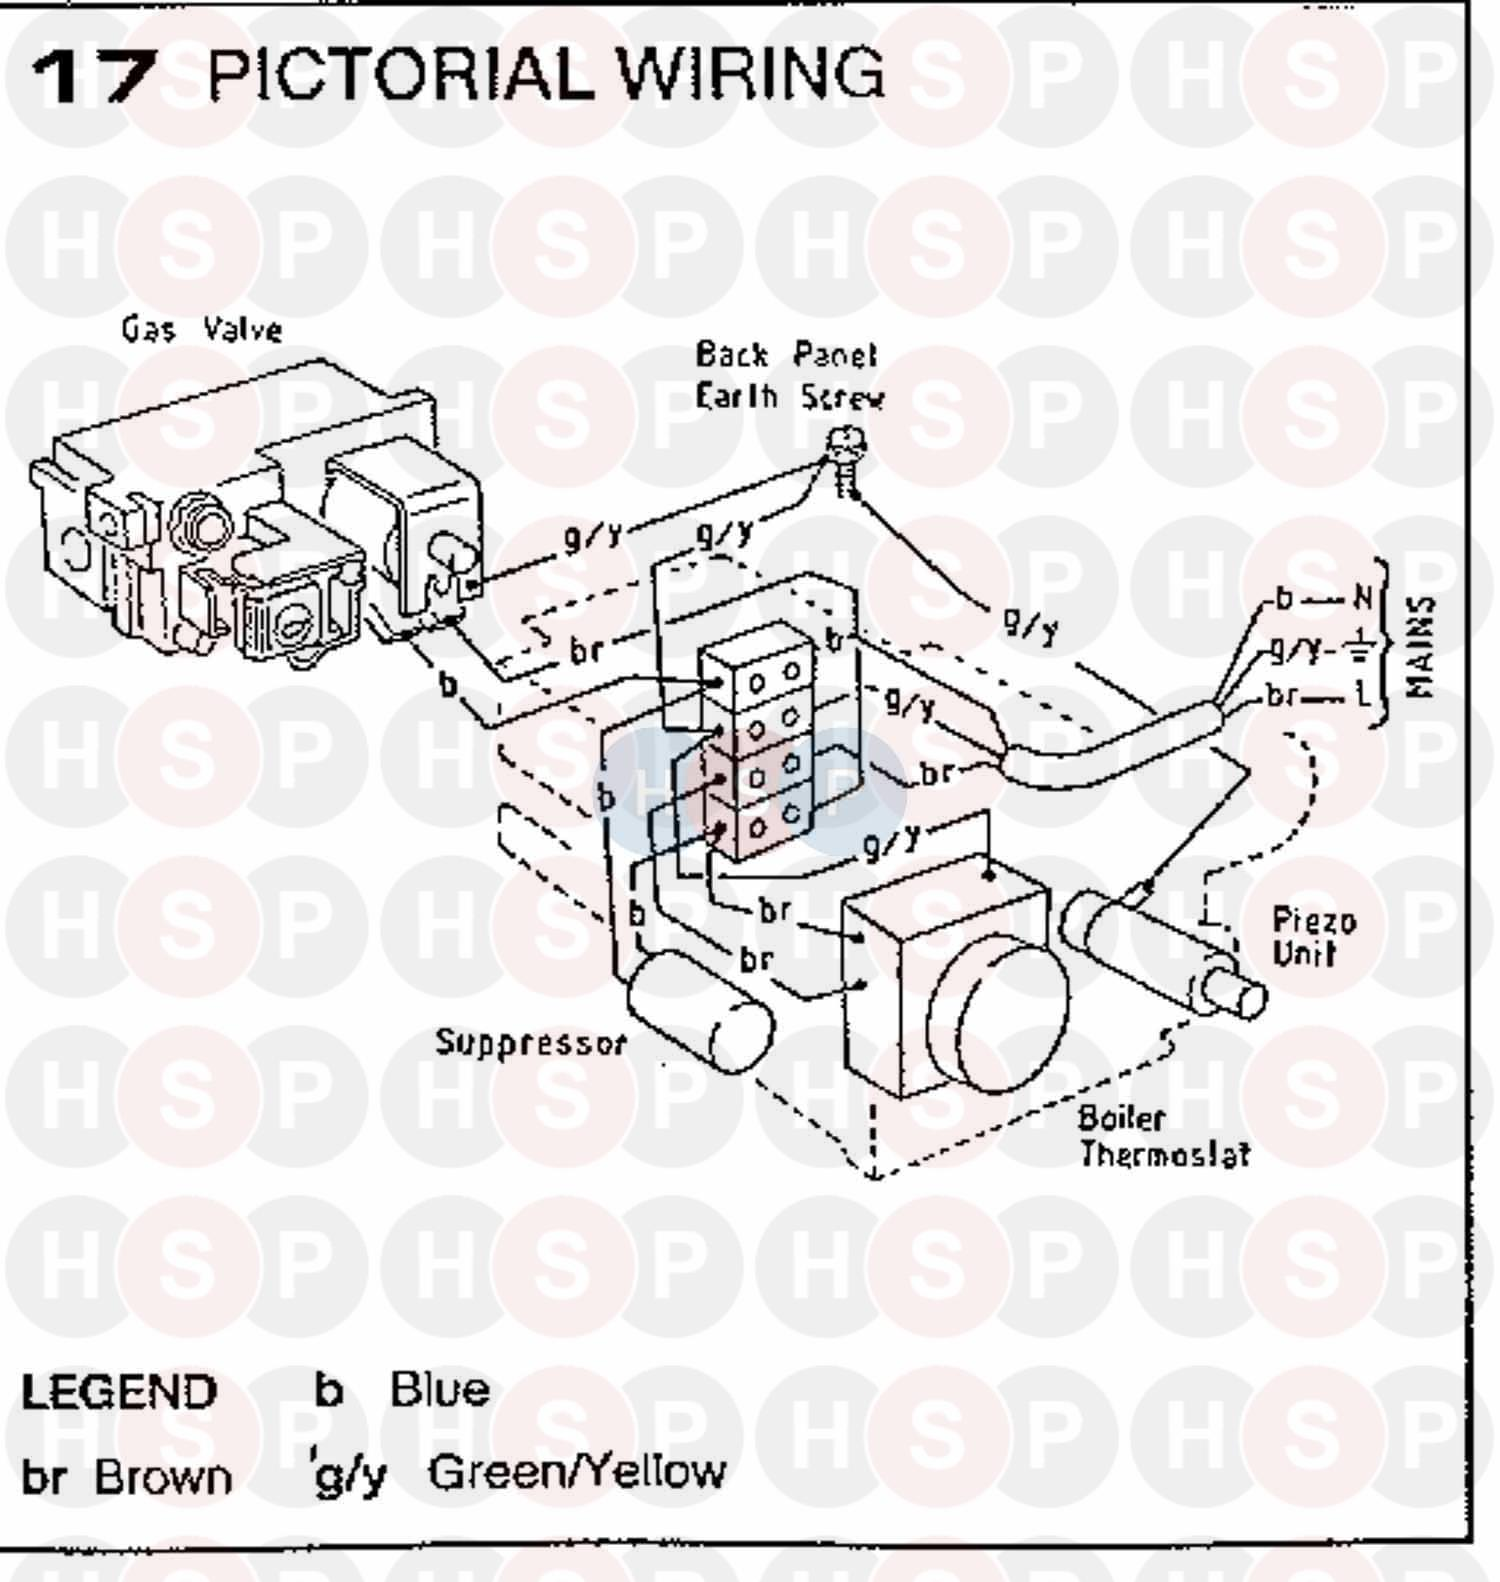 Imit Boiler Thermostat Wiring Diagram likewise Wiring Diagram For Sundial Y Plan as well Megaflow Wiring Diagram moreover Iflo Programmer Wiring Diagram as well Electric Heat Sequencer Wiring Diagram Hvacbeginners Hvac. on honeywell wiring centre diagram